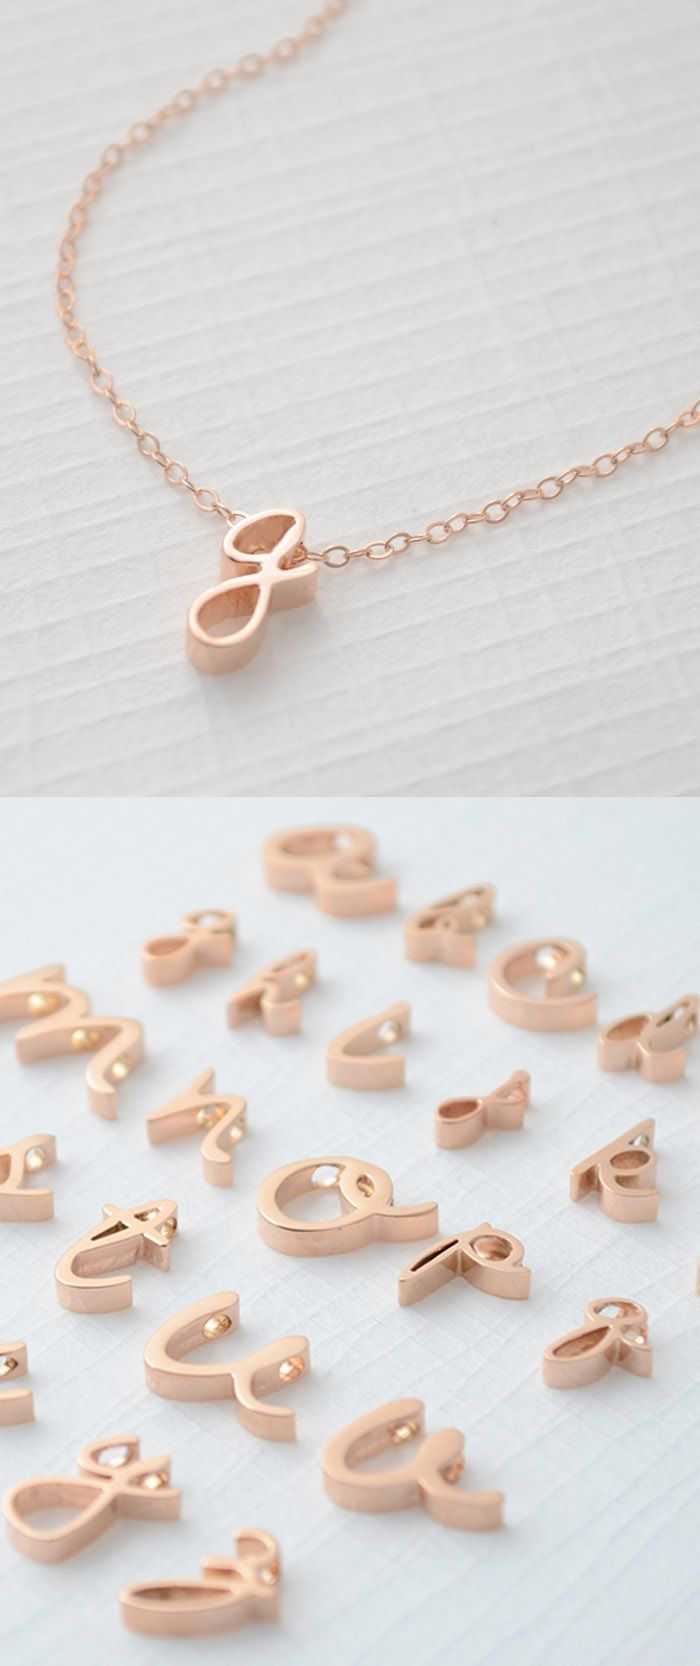 Lower Case Initial Necklace in Rose Gold by Olive Yew.